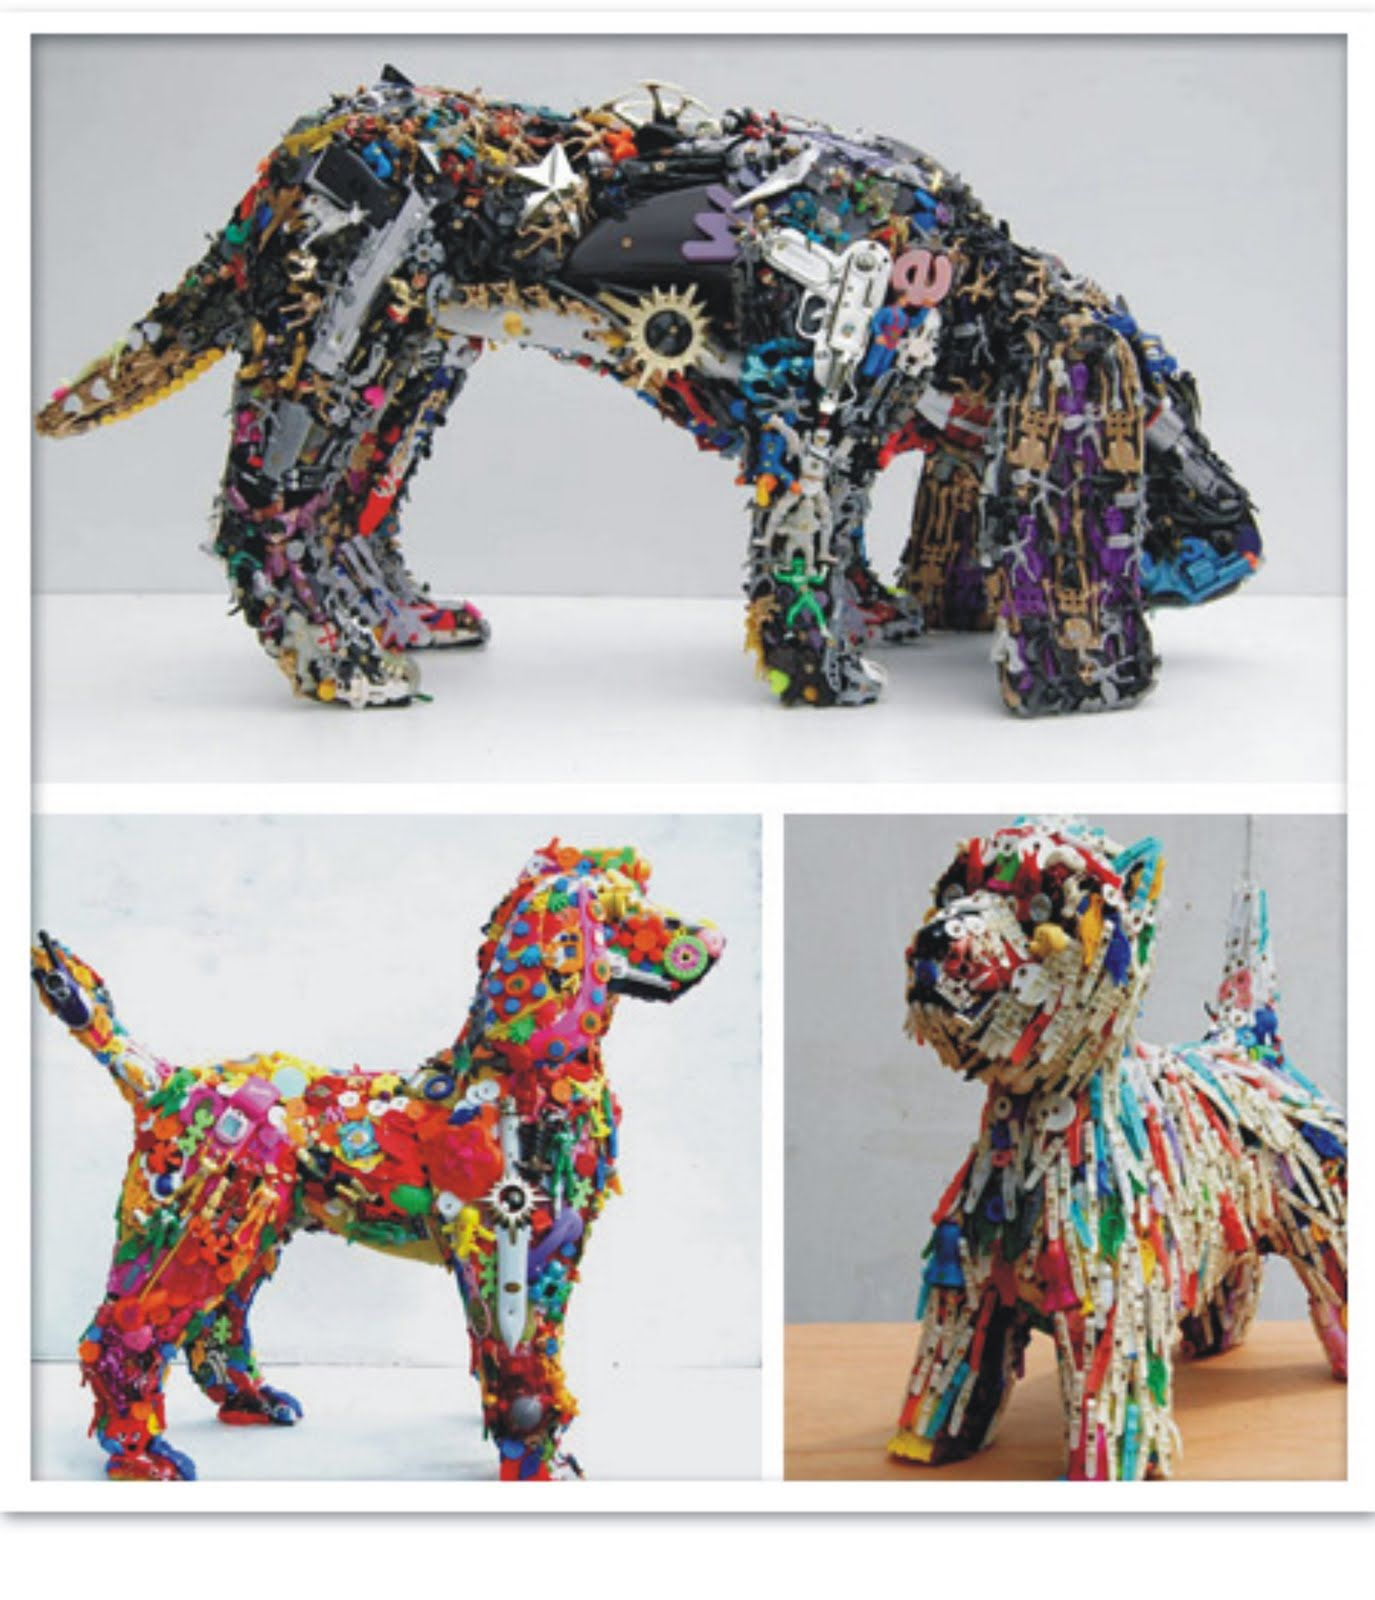 Pin by Lisa Guthrie on ART Recycled art projects